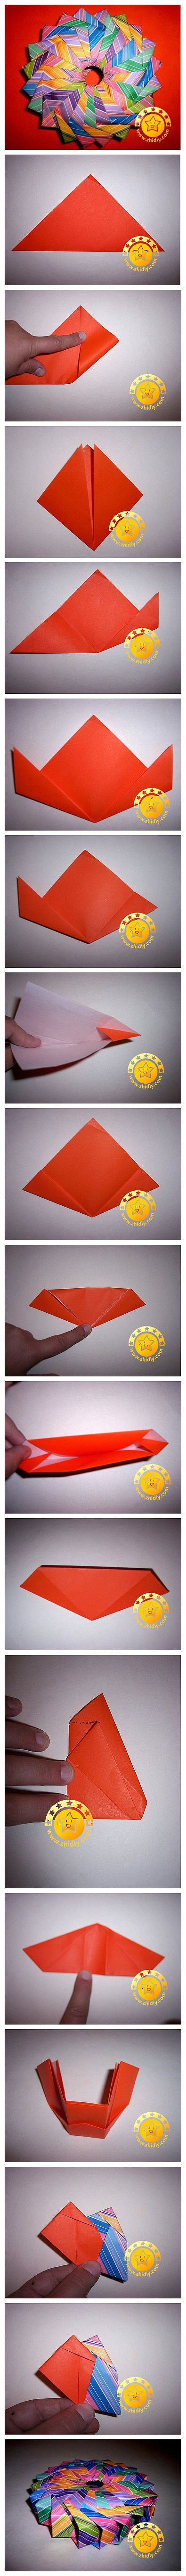 DIY modular origami, I thought it was flat until they showed a picture of it on the side, looks pretty cool!